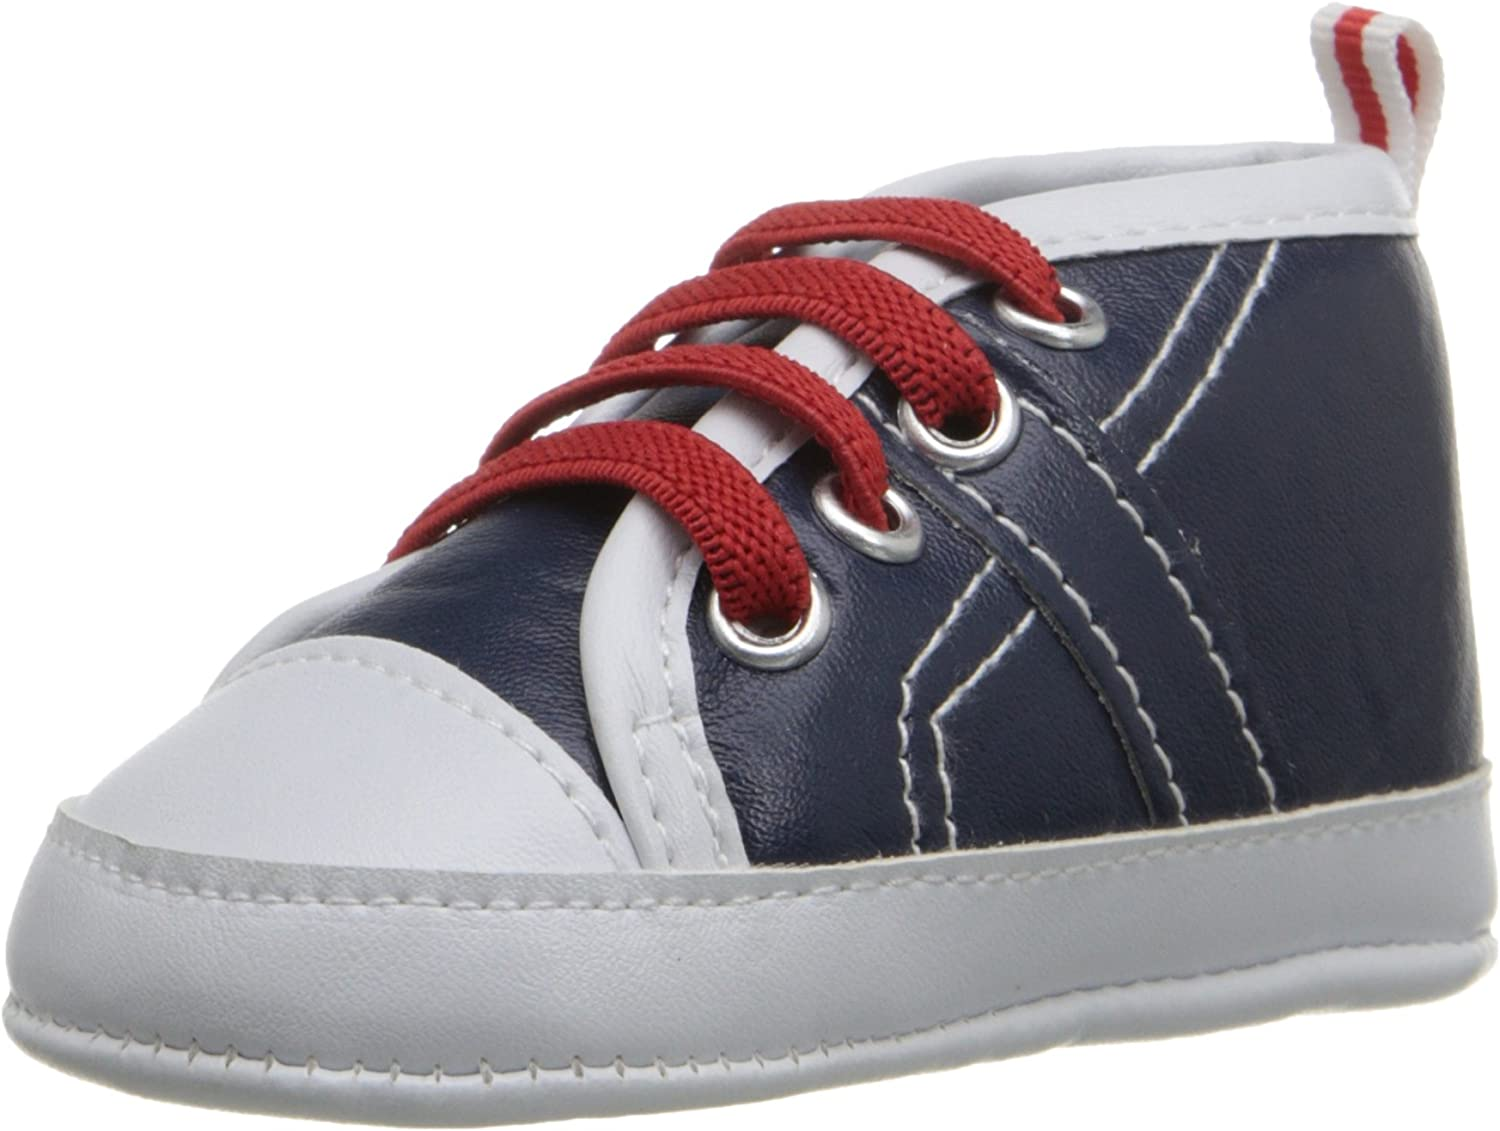 Austin Mall Rugged Bear RB28490 Infant Sneaker Max 63% OFF Toddler